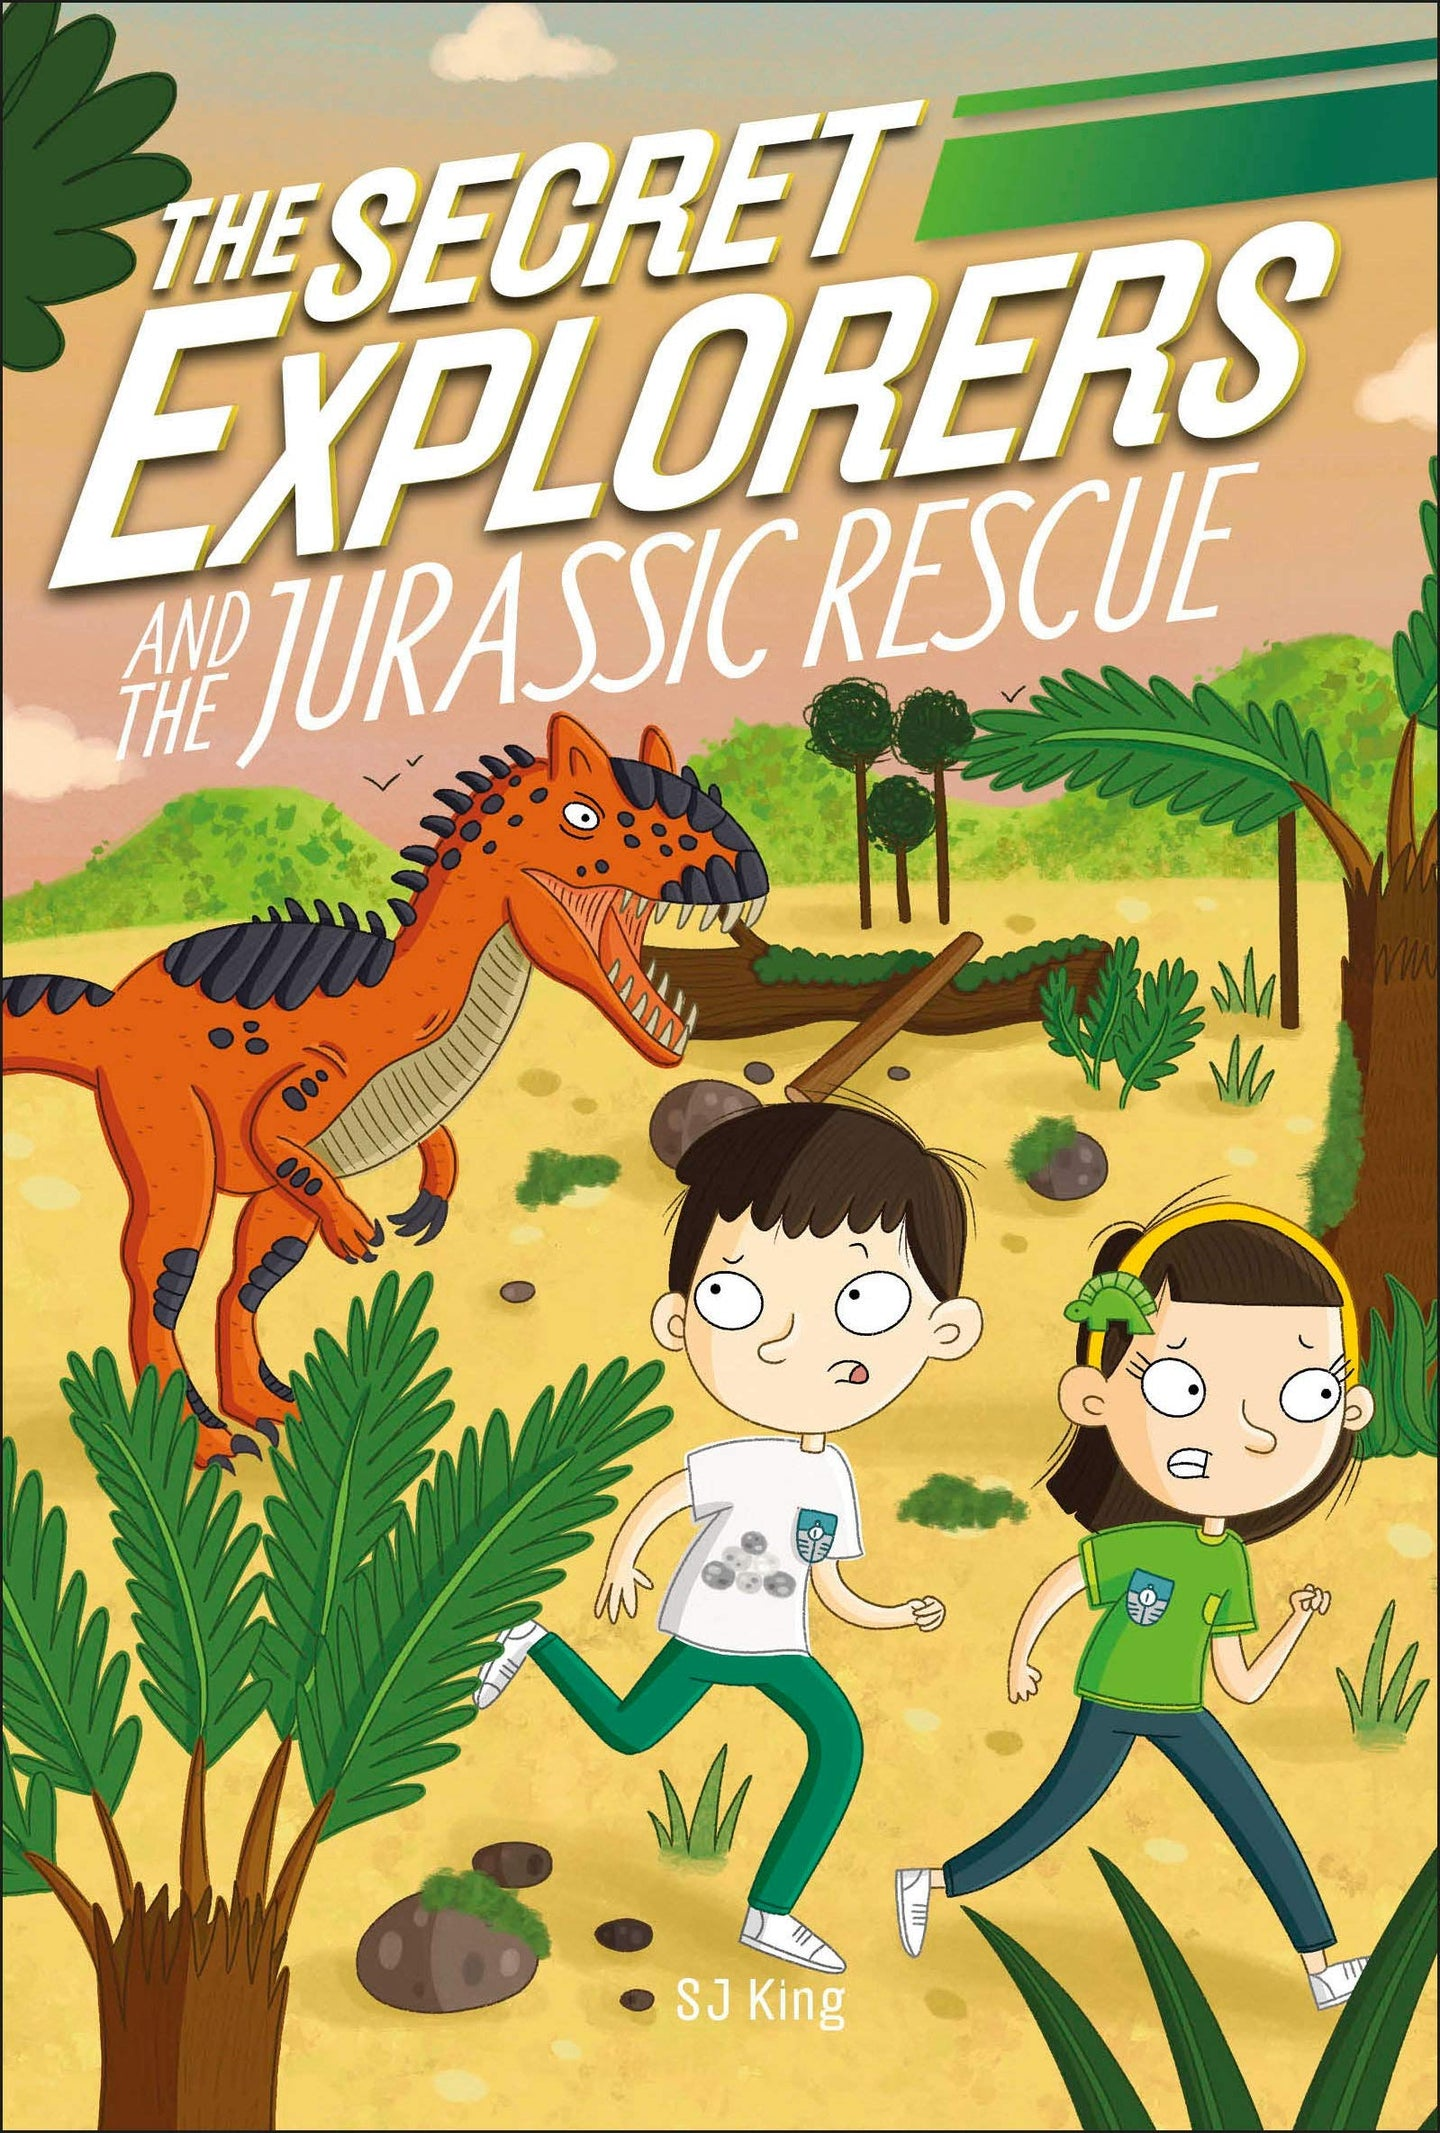 The Secret Explorers and the Jurassic Rescue (Paperback)